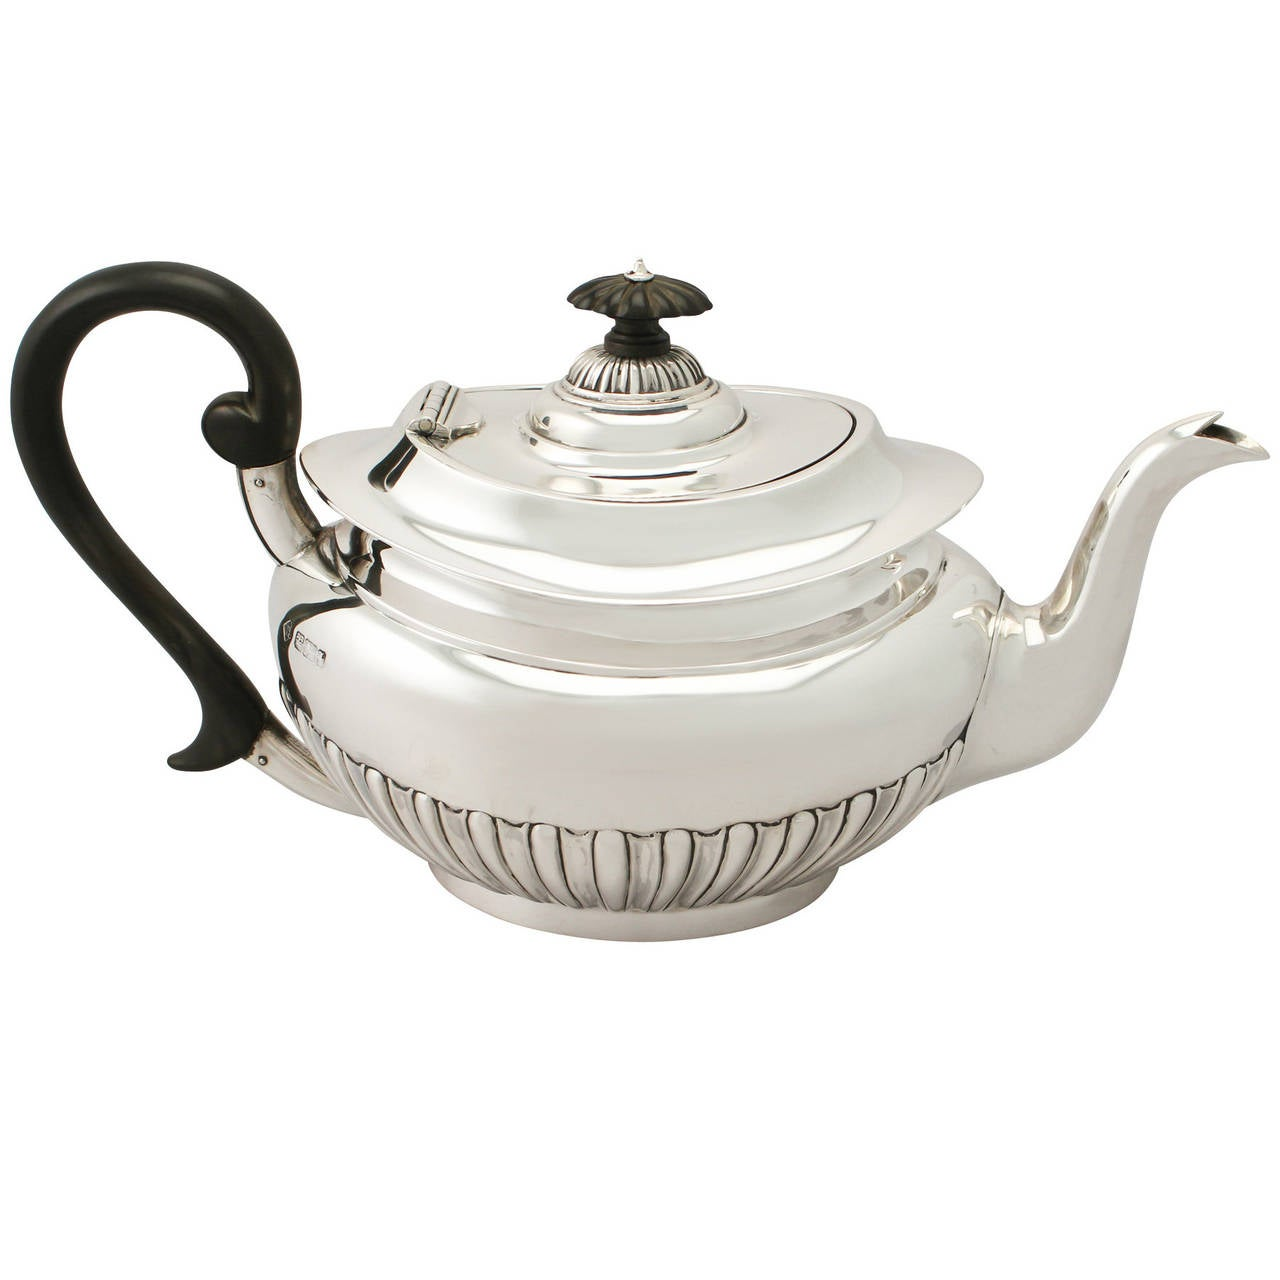 Sterling Silver Teapot Antique Edwardian At 1stdibs